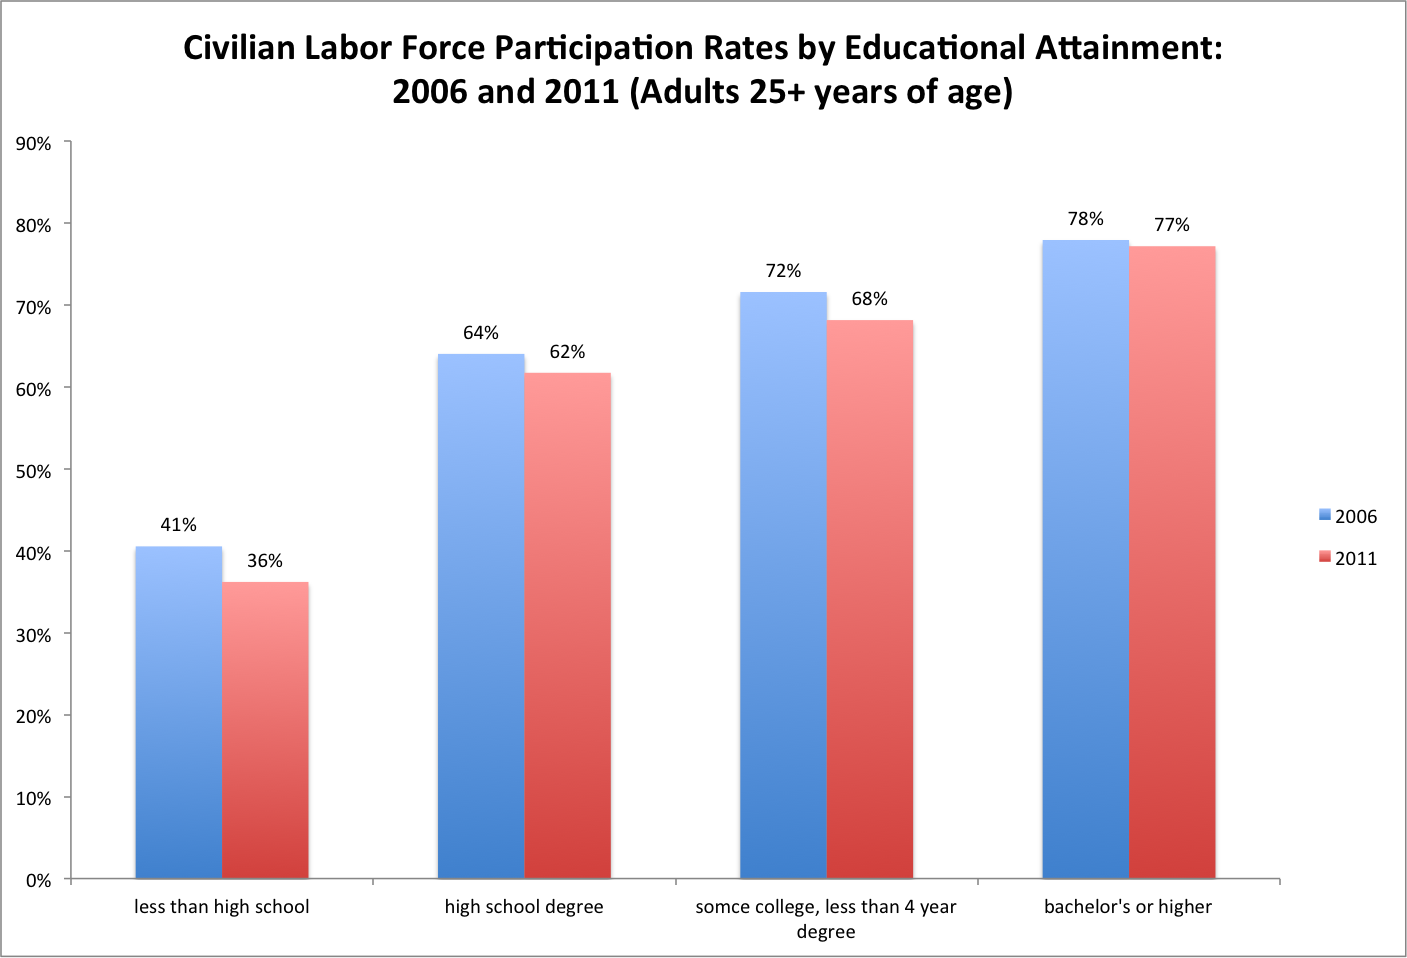 uncategorized the regional economics institute at colorado state participation rates highest for those at least a bachelor s degree this is consistent previous posts of mine showing higher incomes and